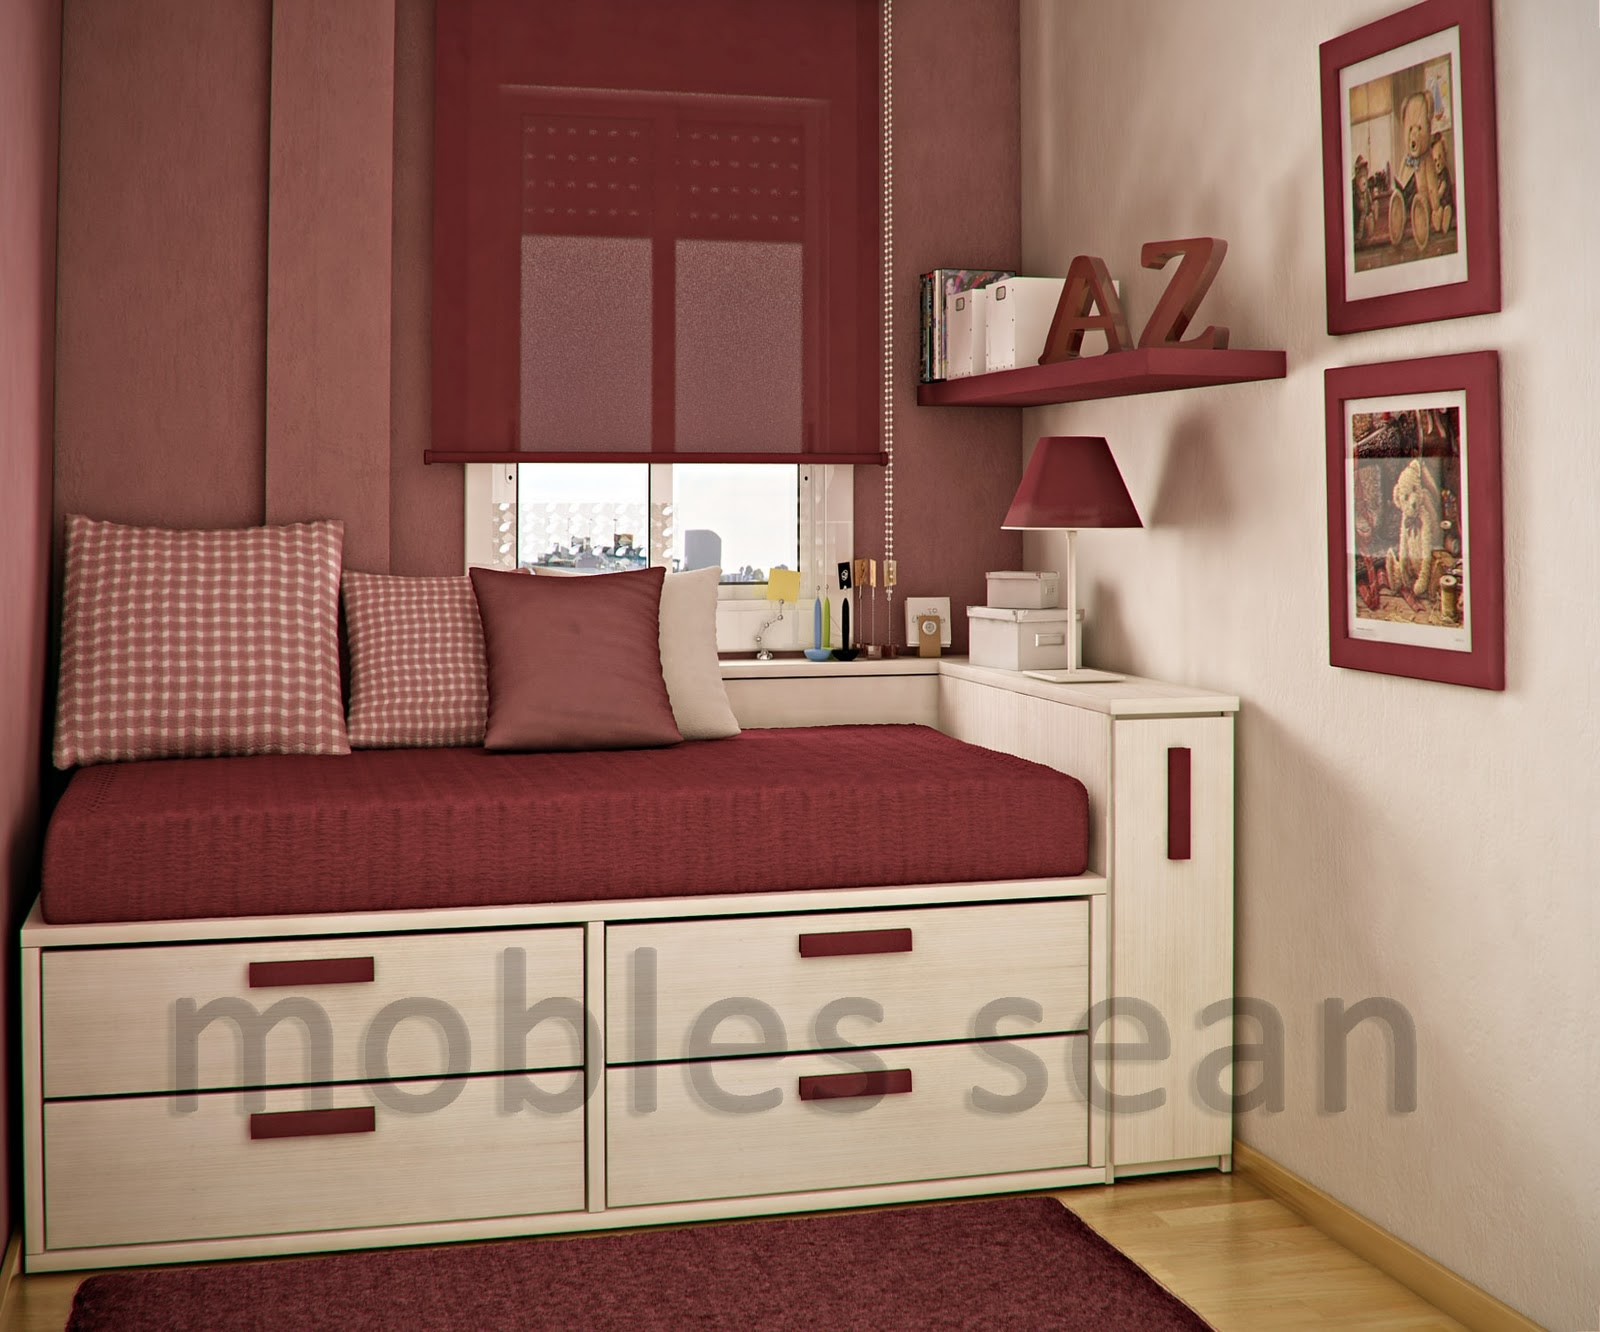 Space-Saving Designs for Small Kids Rooms on Bedroom Ideas For Small Spaces  id=14792